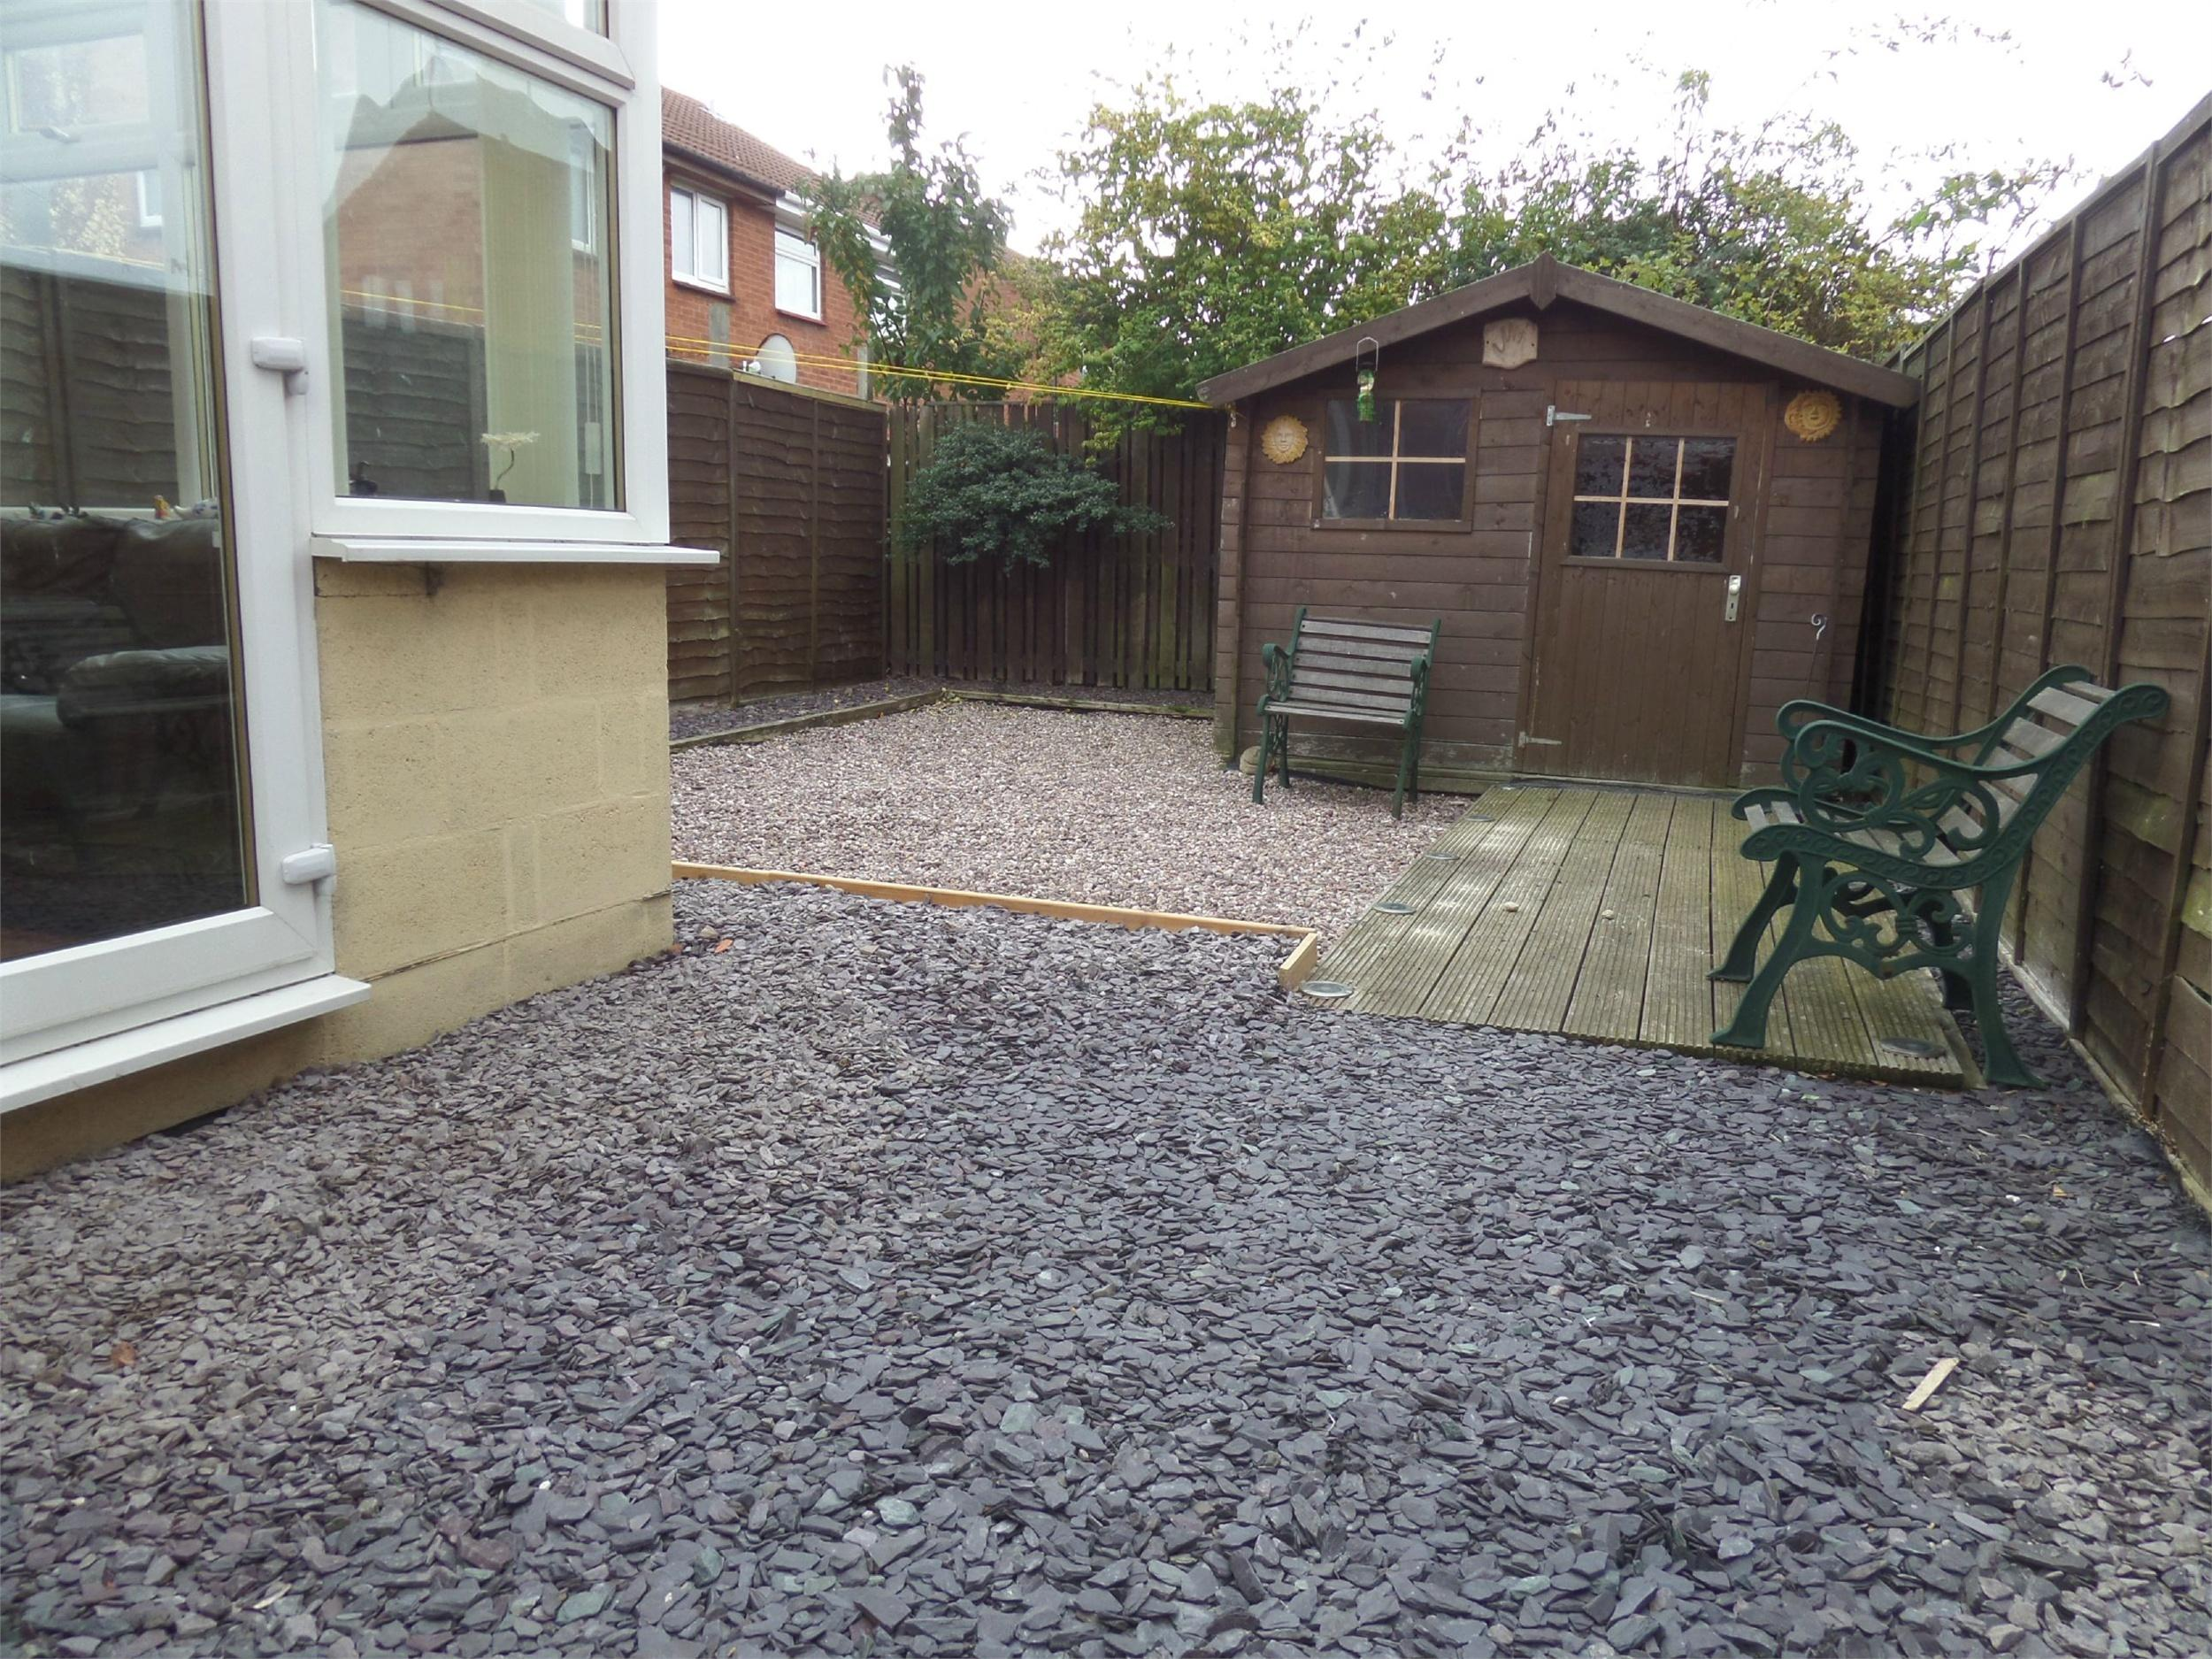 Whitegates Walton Vale 2 Bedroom Semi Detached House For